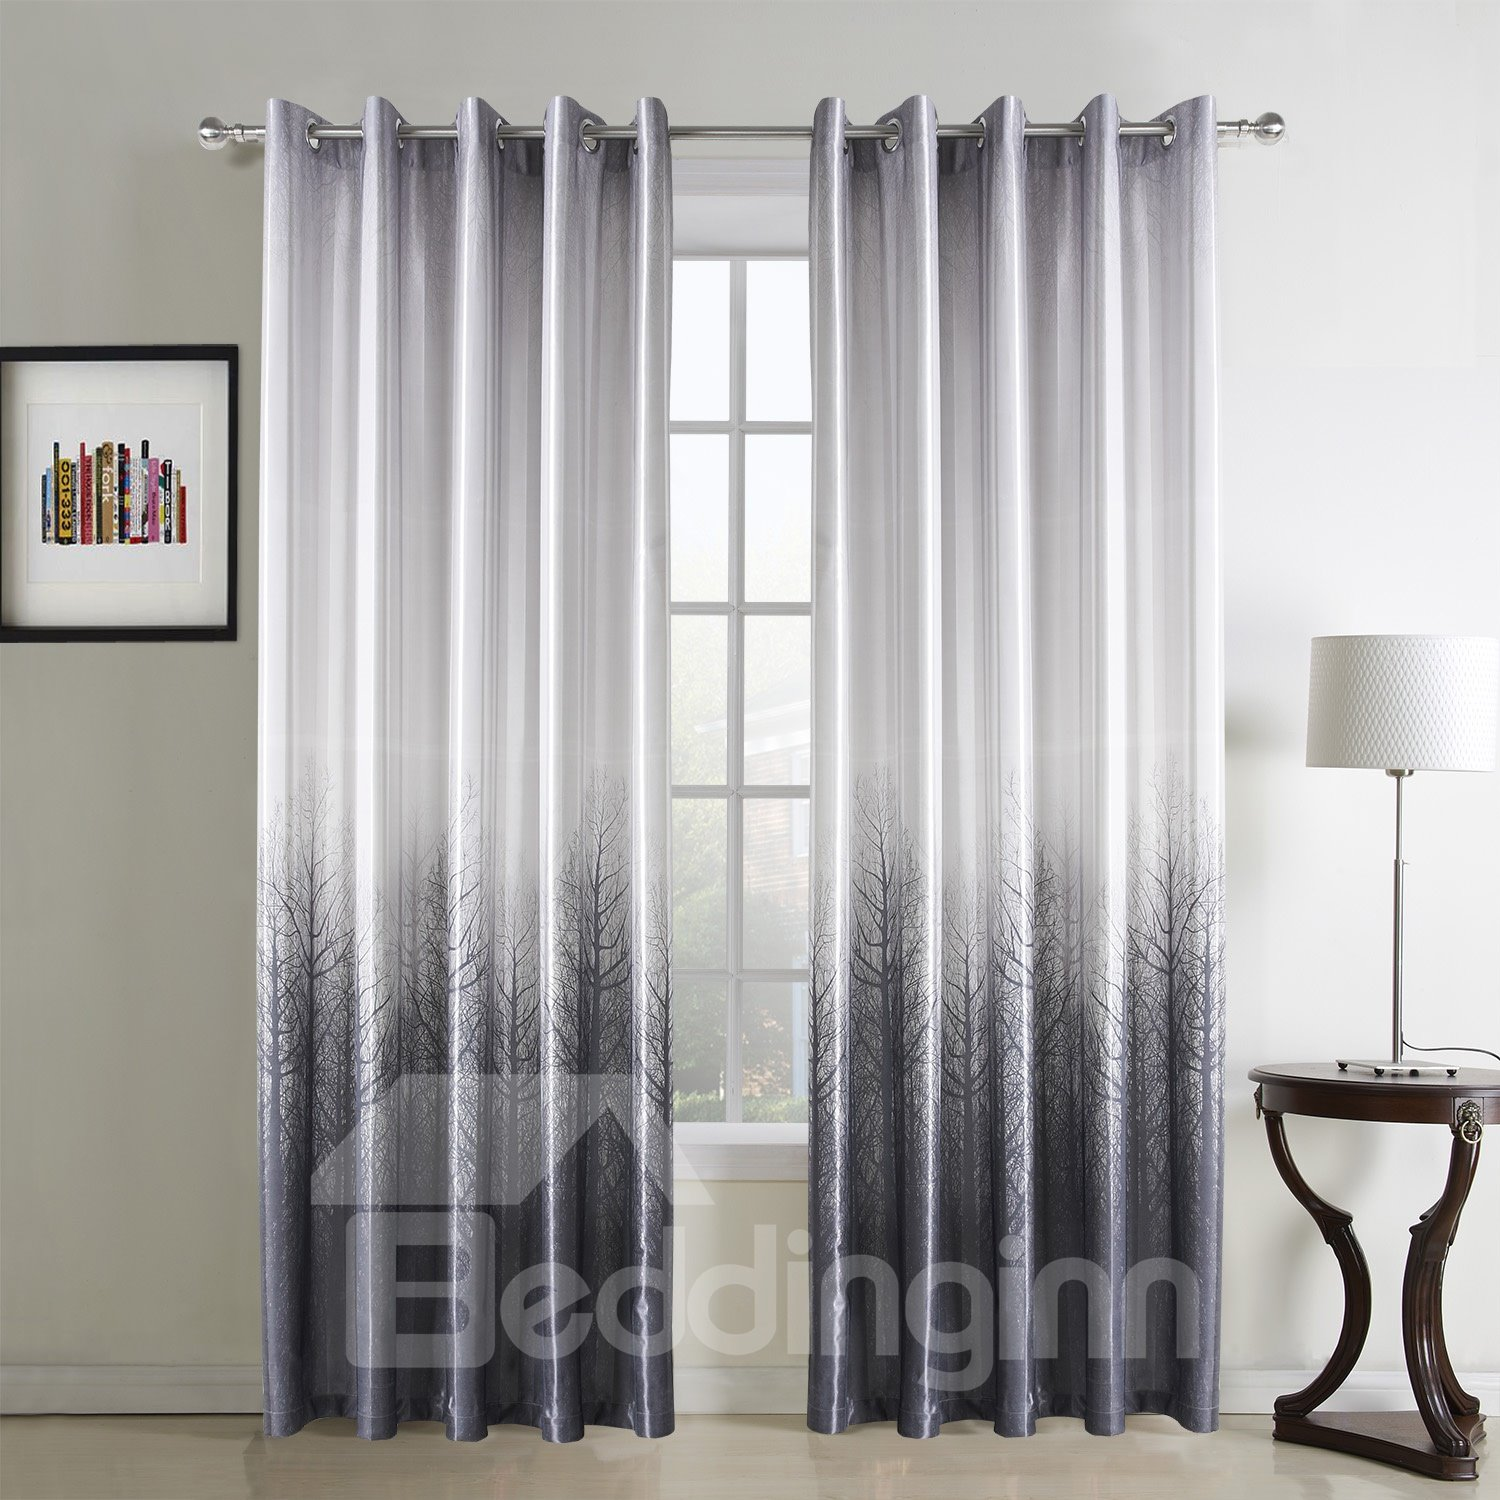 Top Quality Pretty Pastoral Style Black Custom Curtain